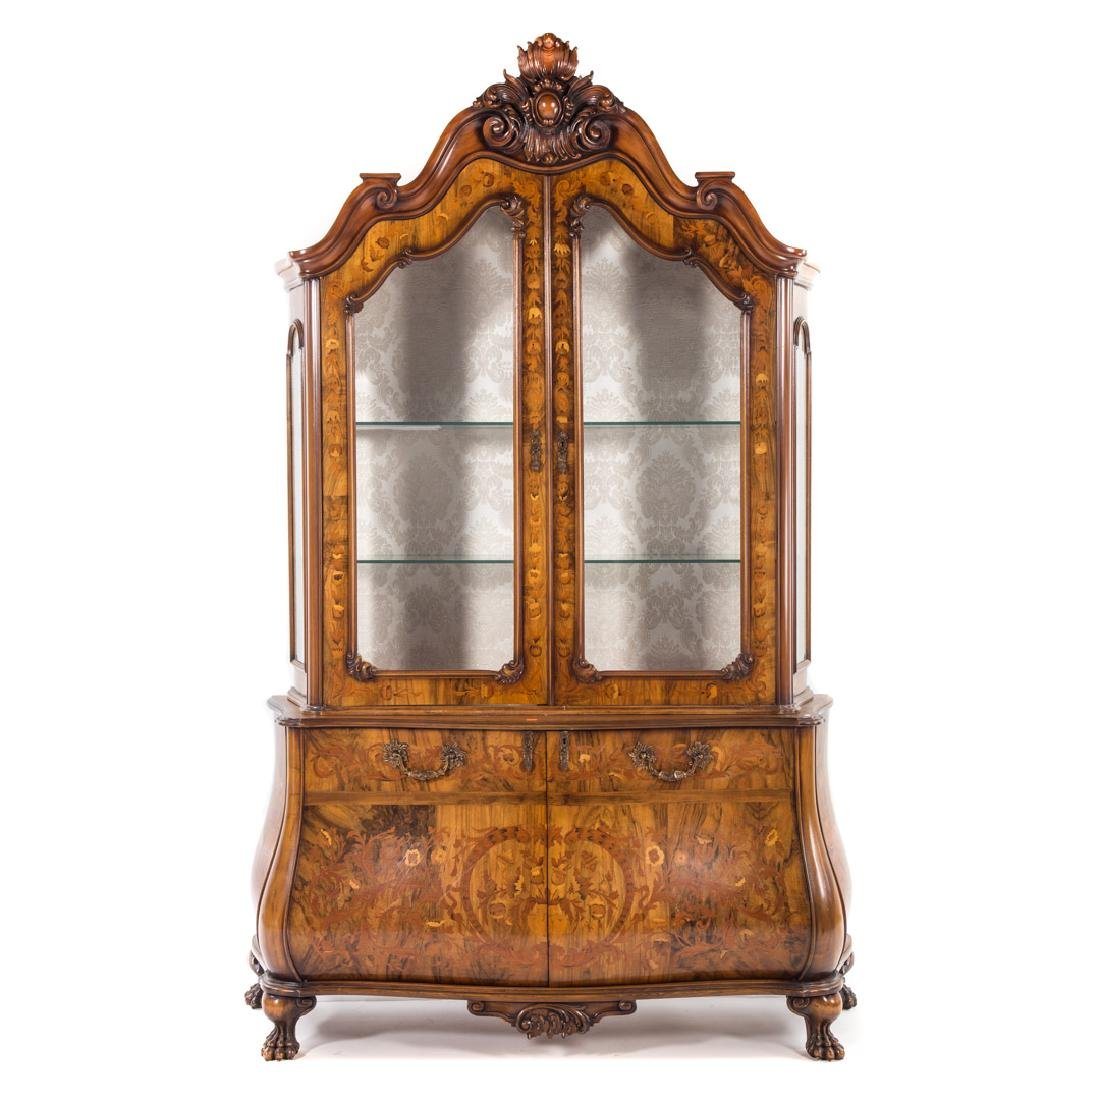 Dutch style marquetry inlaid walnut bombe cabinet,